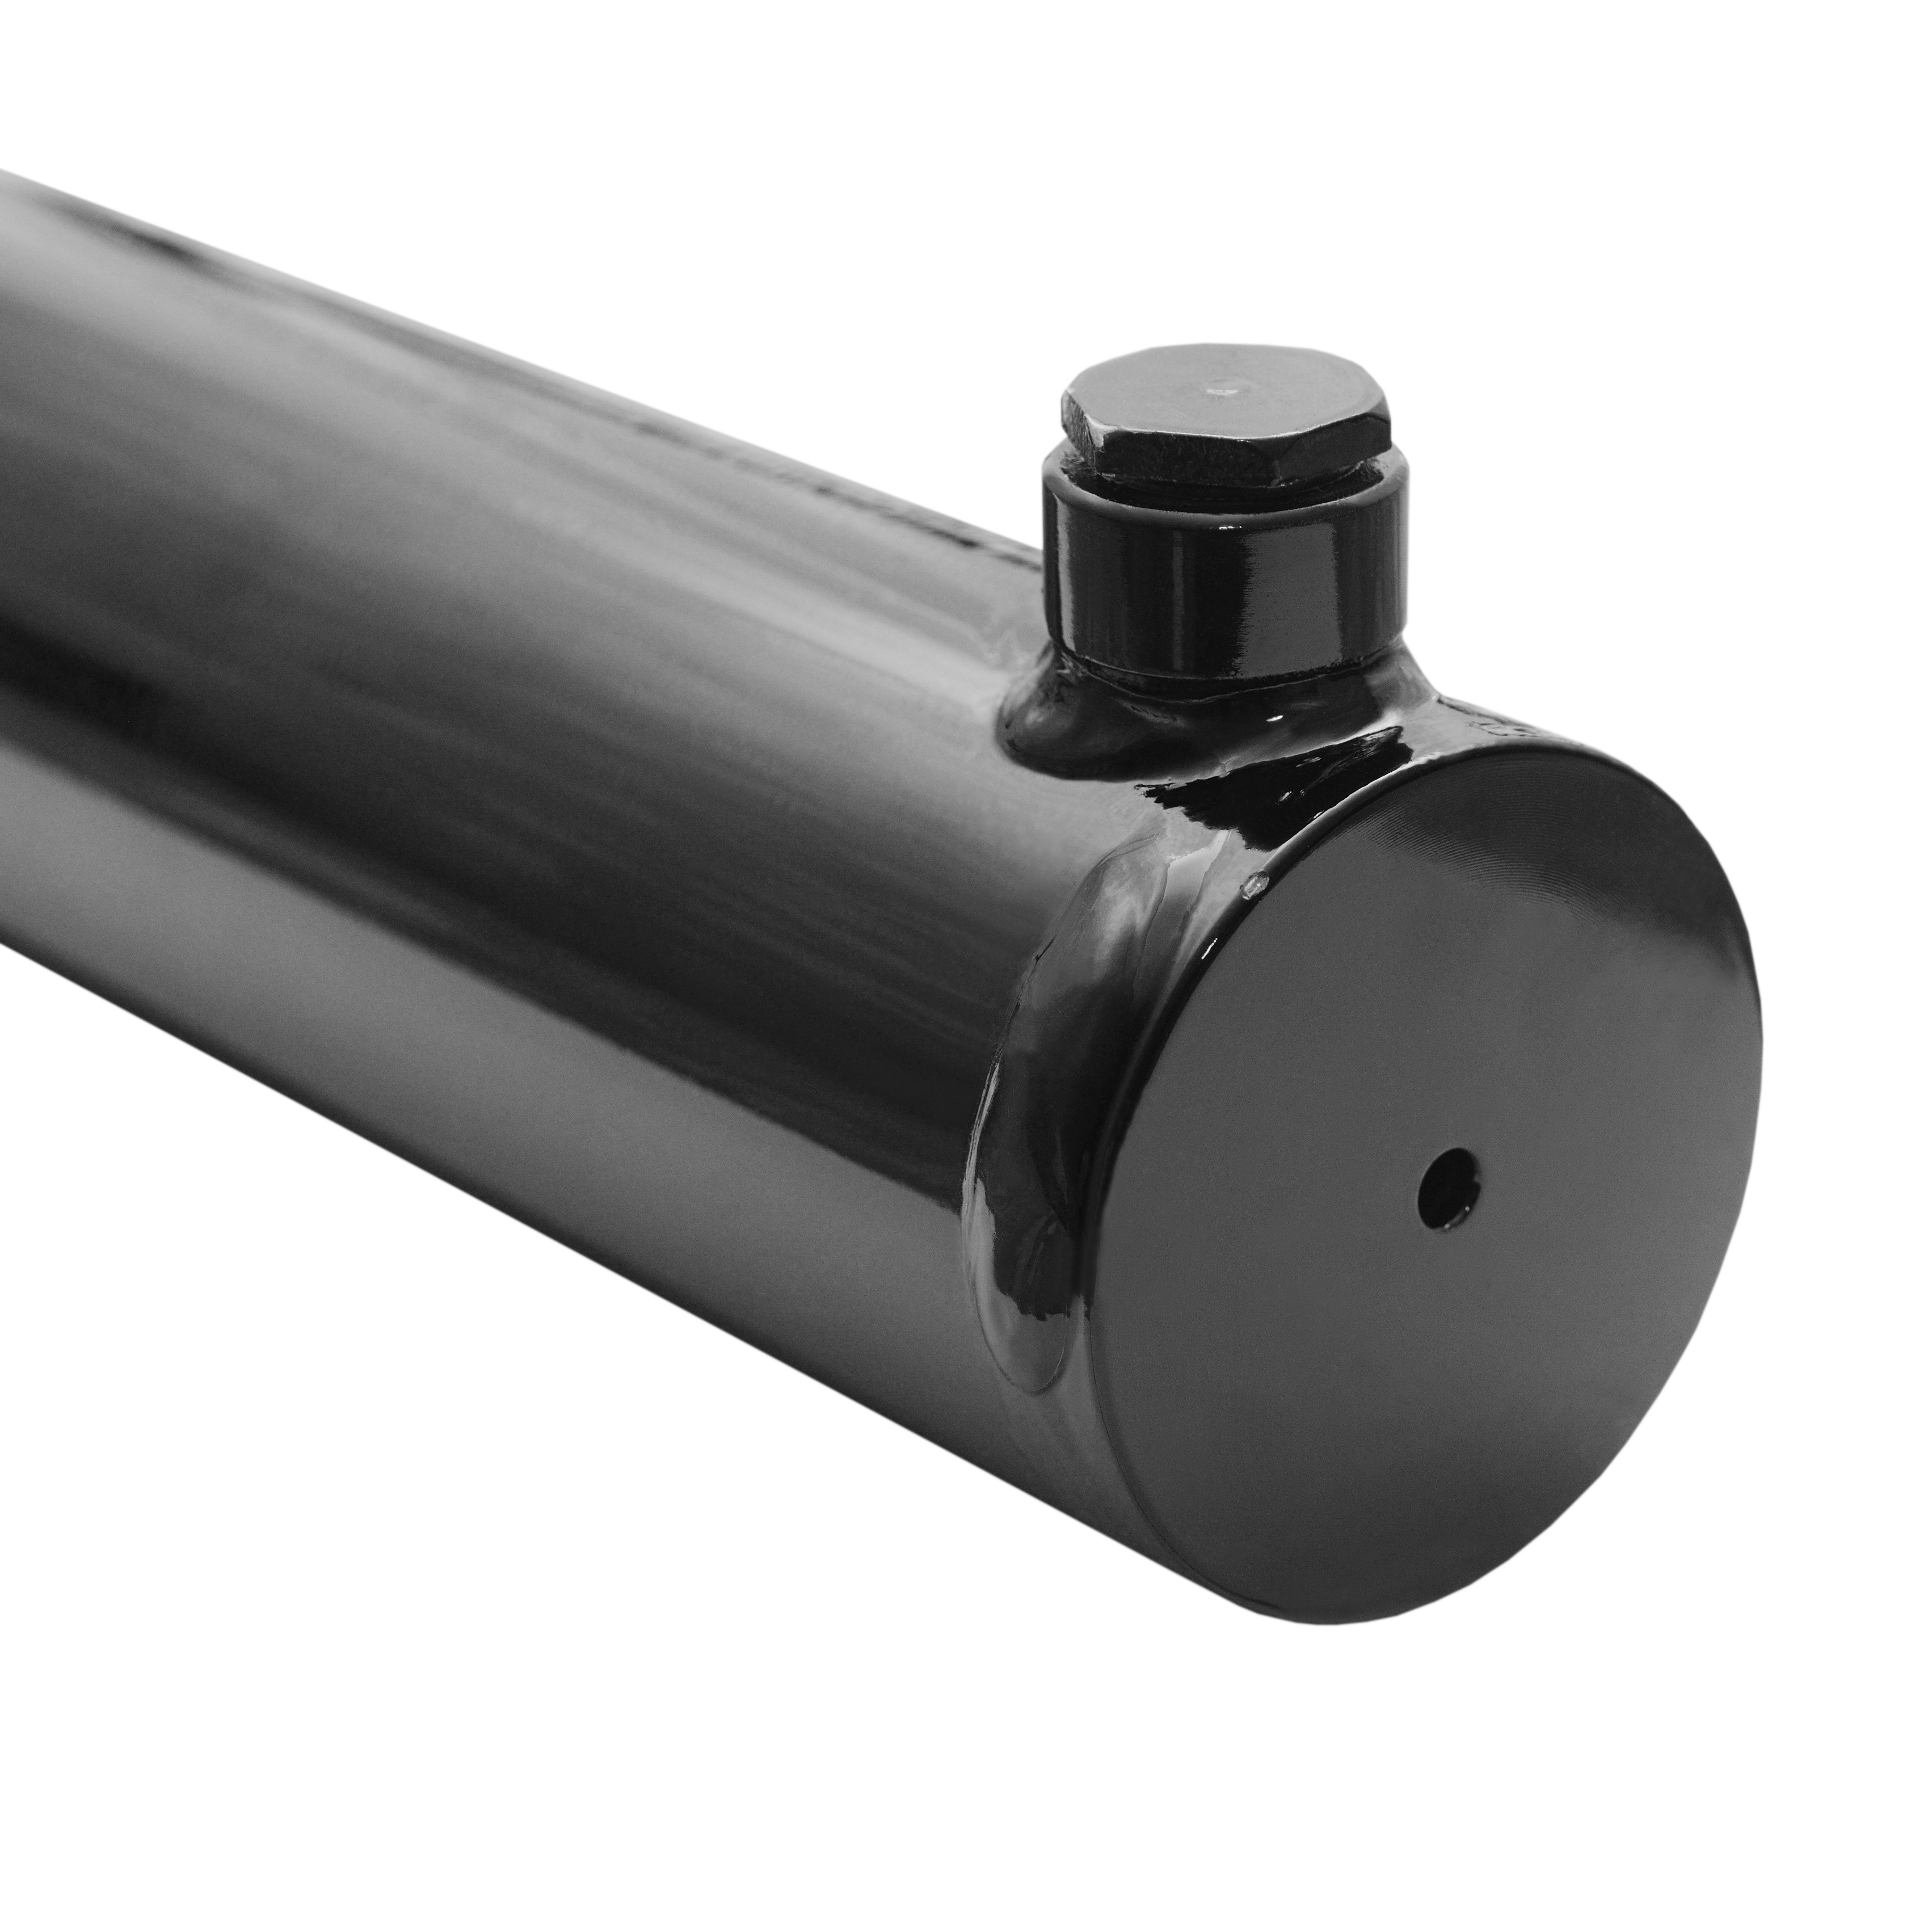 2 bore x 17 stroke hydraulic cylinder, welded universal double acting cylinder   Magister Hydraulics